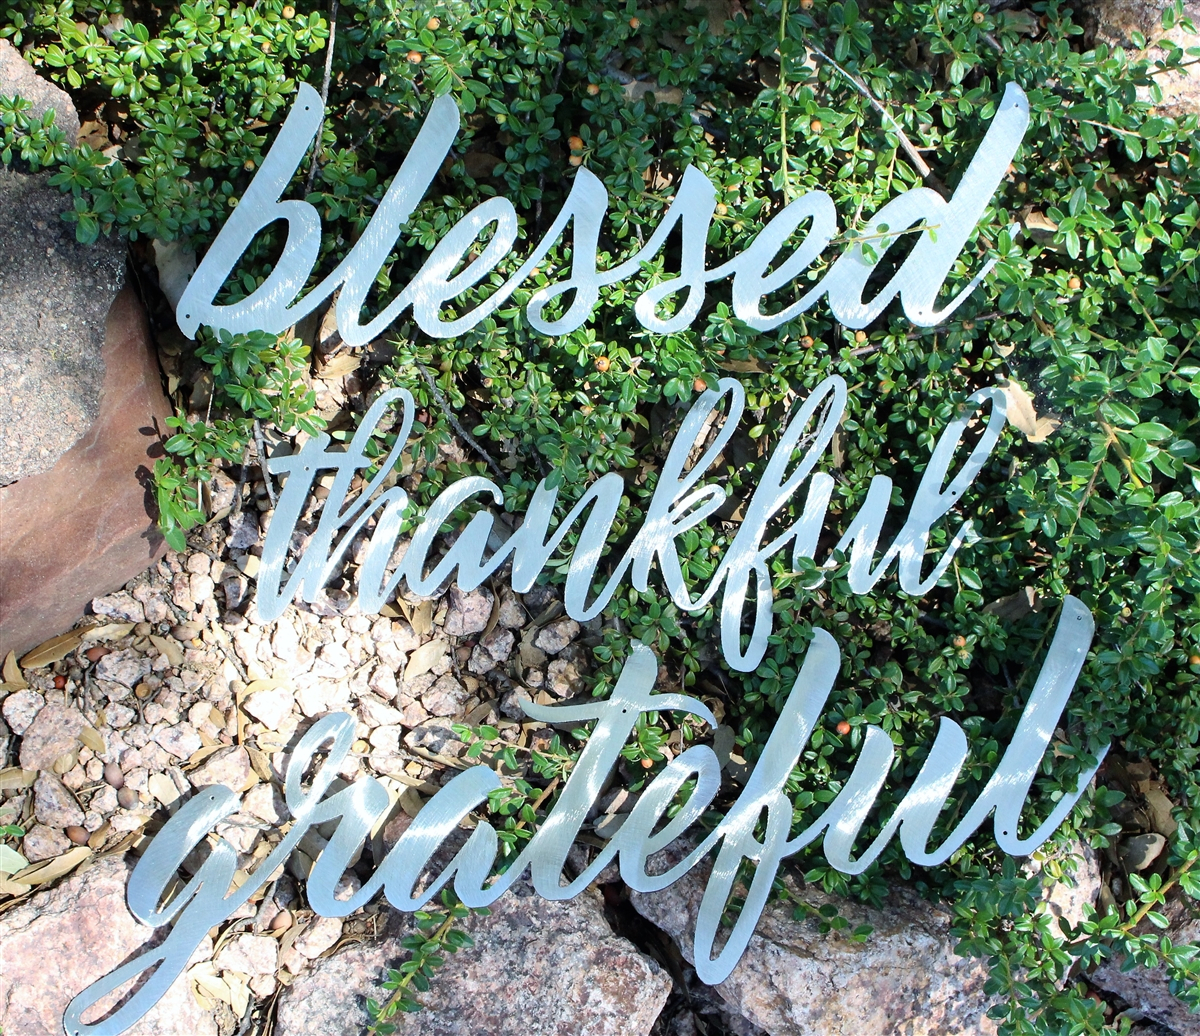 Thankful, Grateful & Blessed Metal Wall Art Words Polished Steel Intended For Blessed Steel Wall Decor (View 11 of 30)